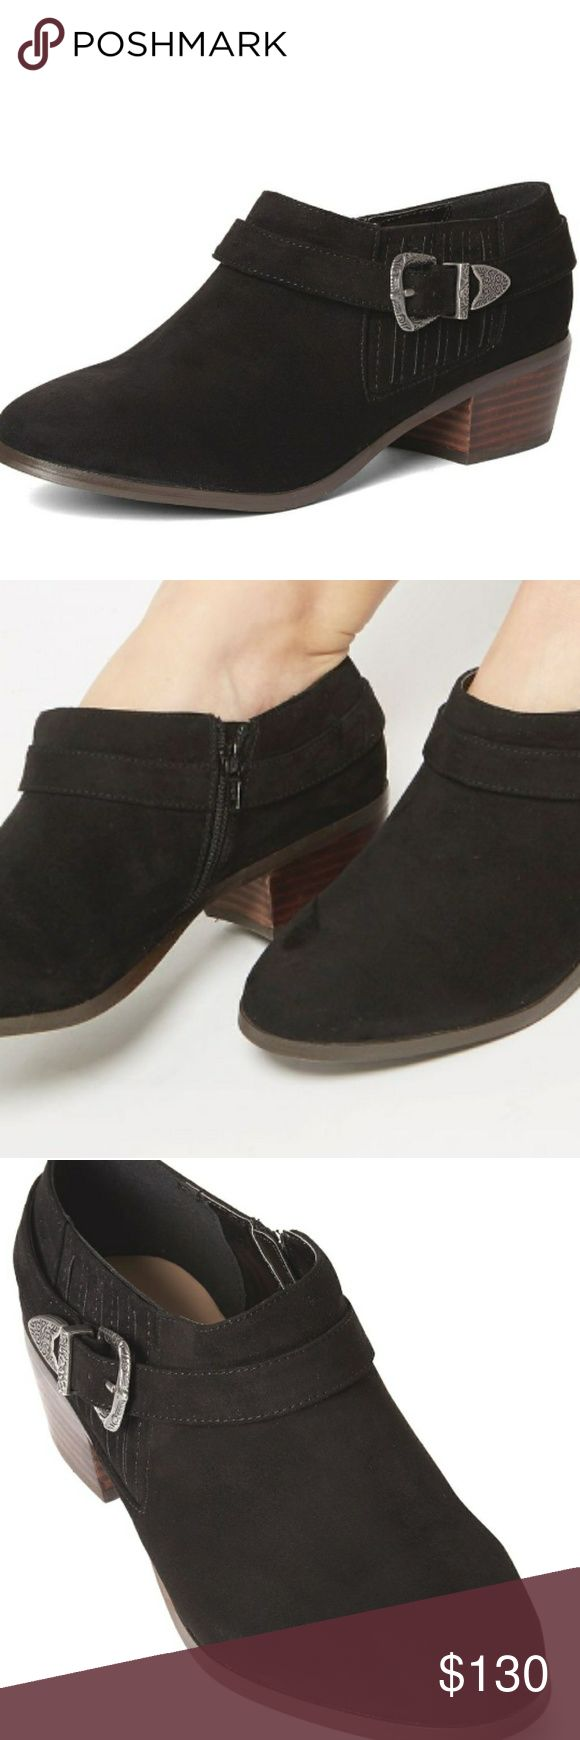 BLACK RODEO LOW ANKLE BOOTS...13www Beautiful SUEDE ANKLE BOOTS...for the BIGLEGBABE!!!...VERY BEAUTIFUL AND COMFORTSBLE....HARD TO FIND SIZES. Shoes Ankle Boots & Booties